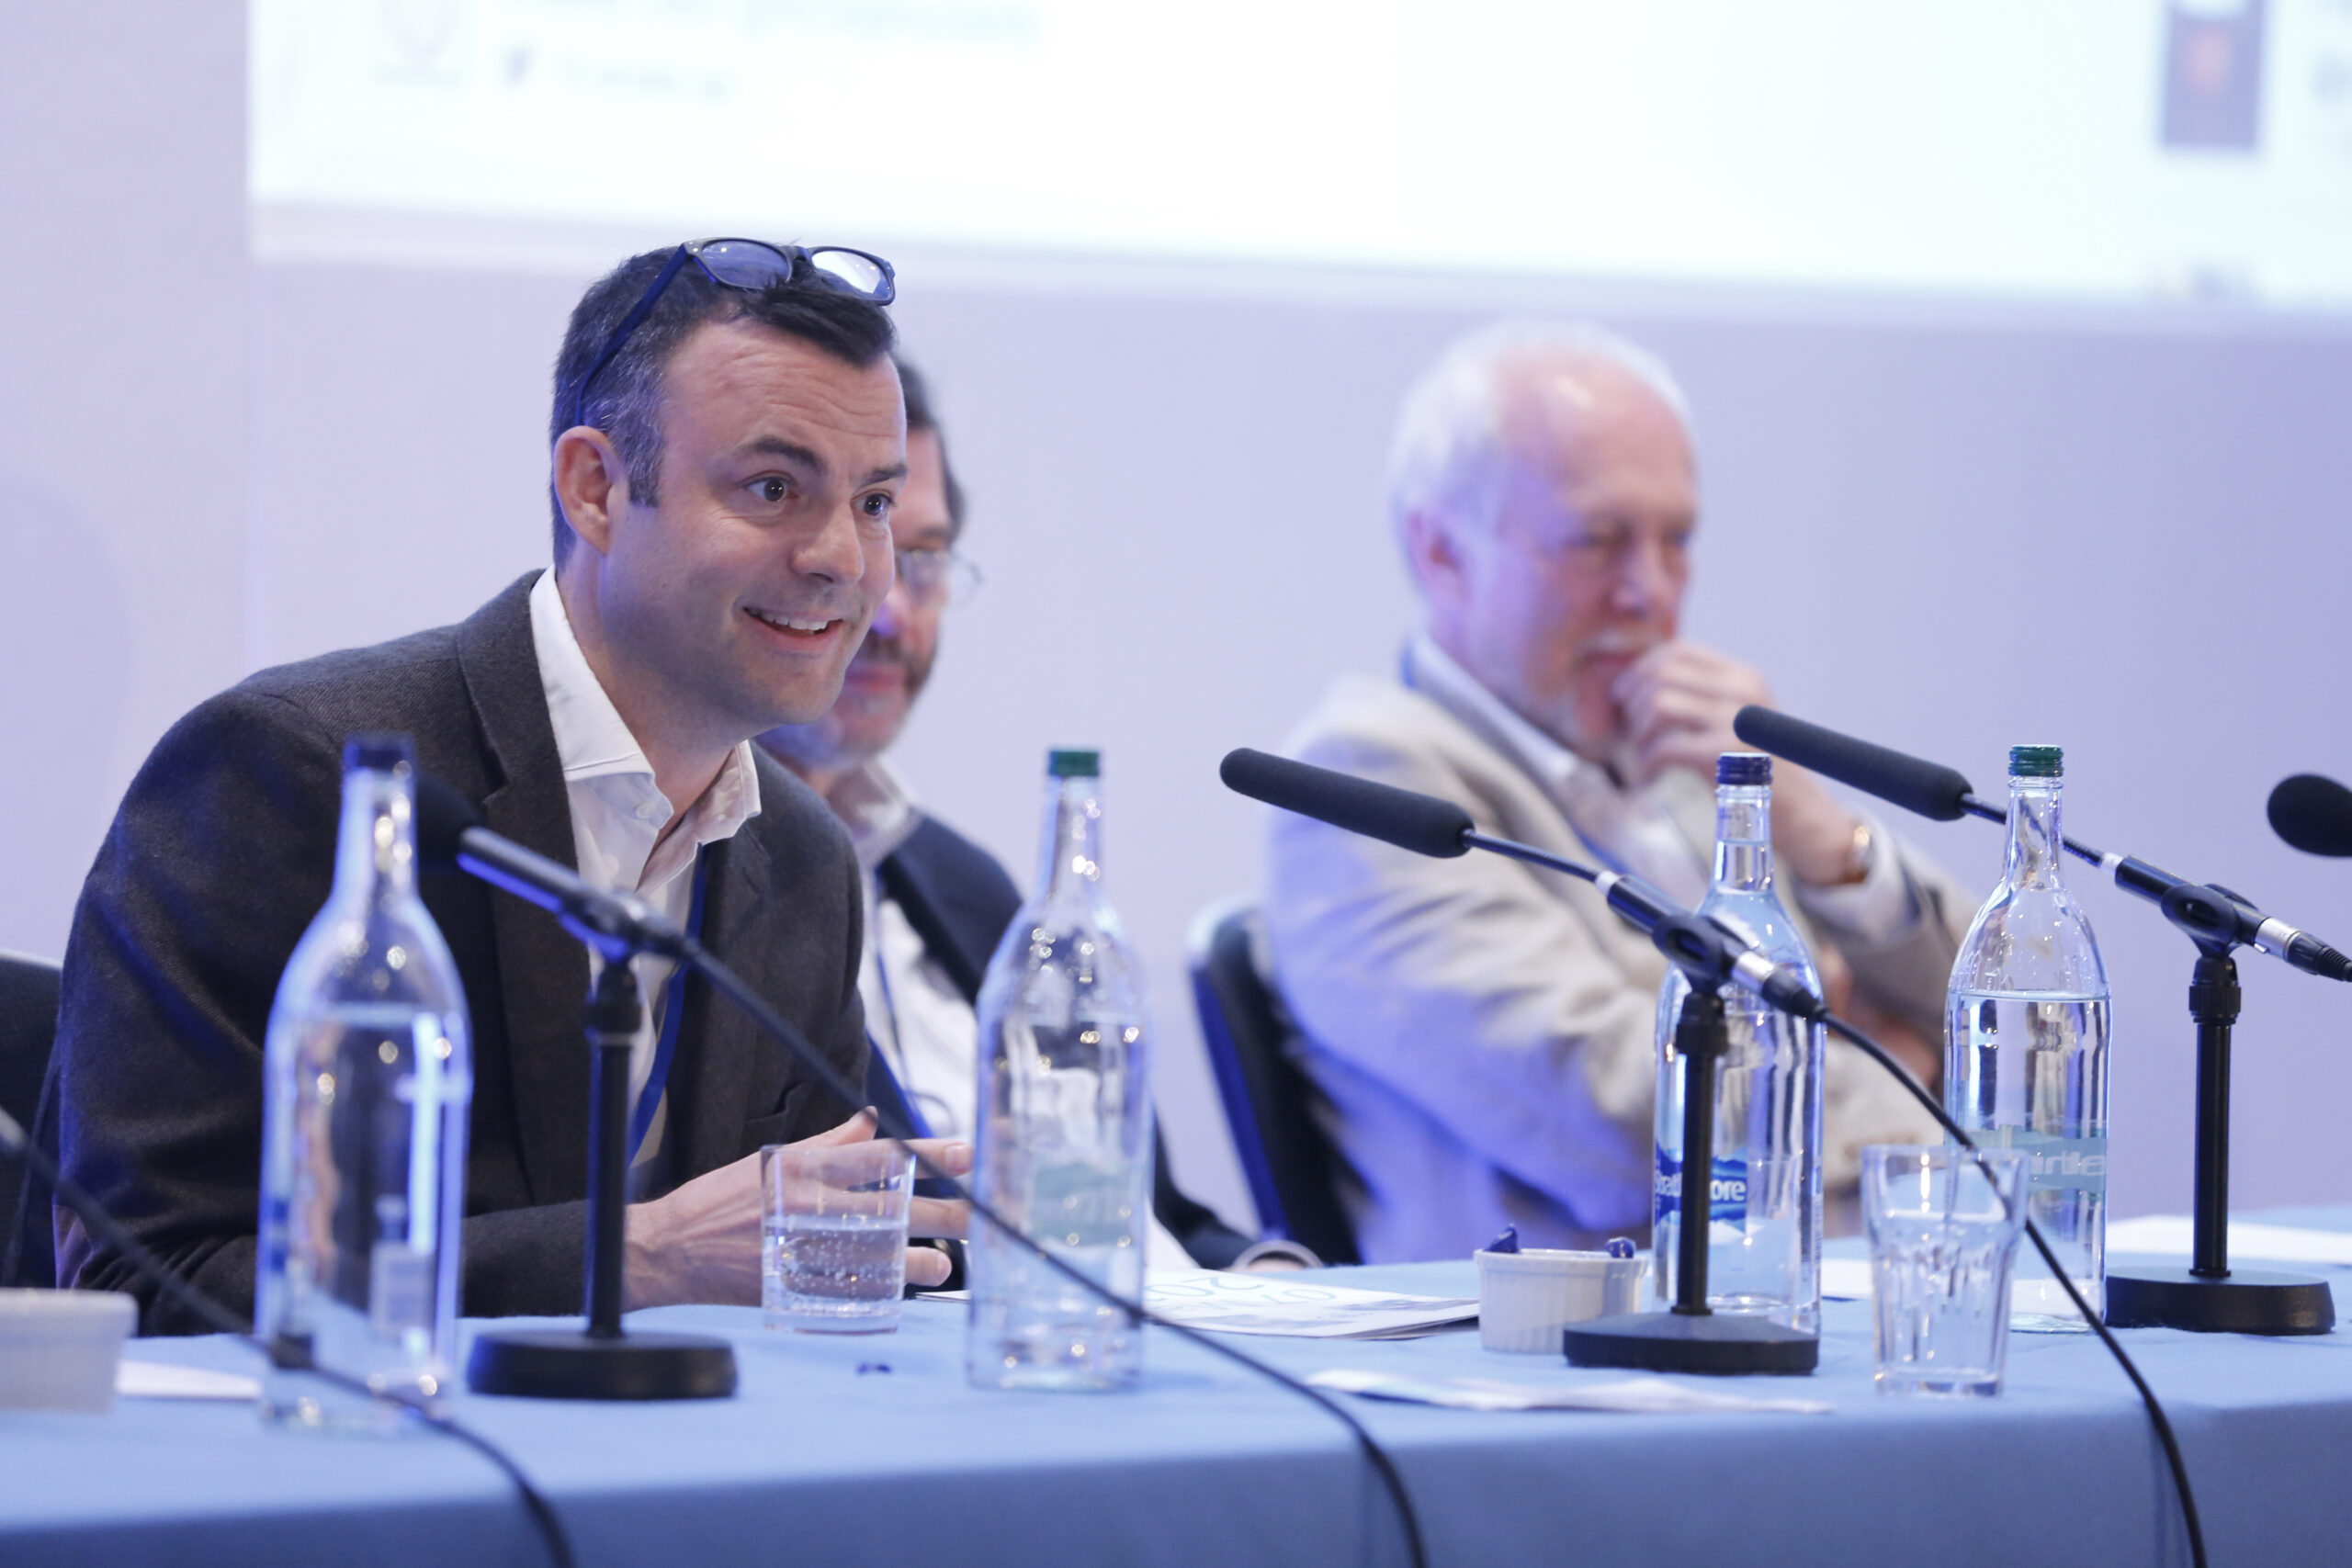 The research panel at Open Day 2015